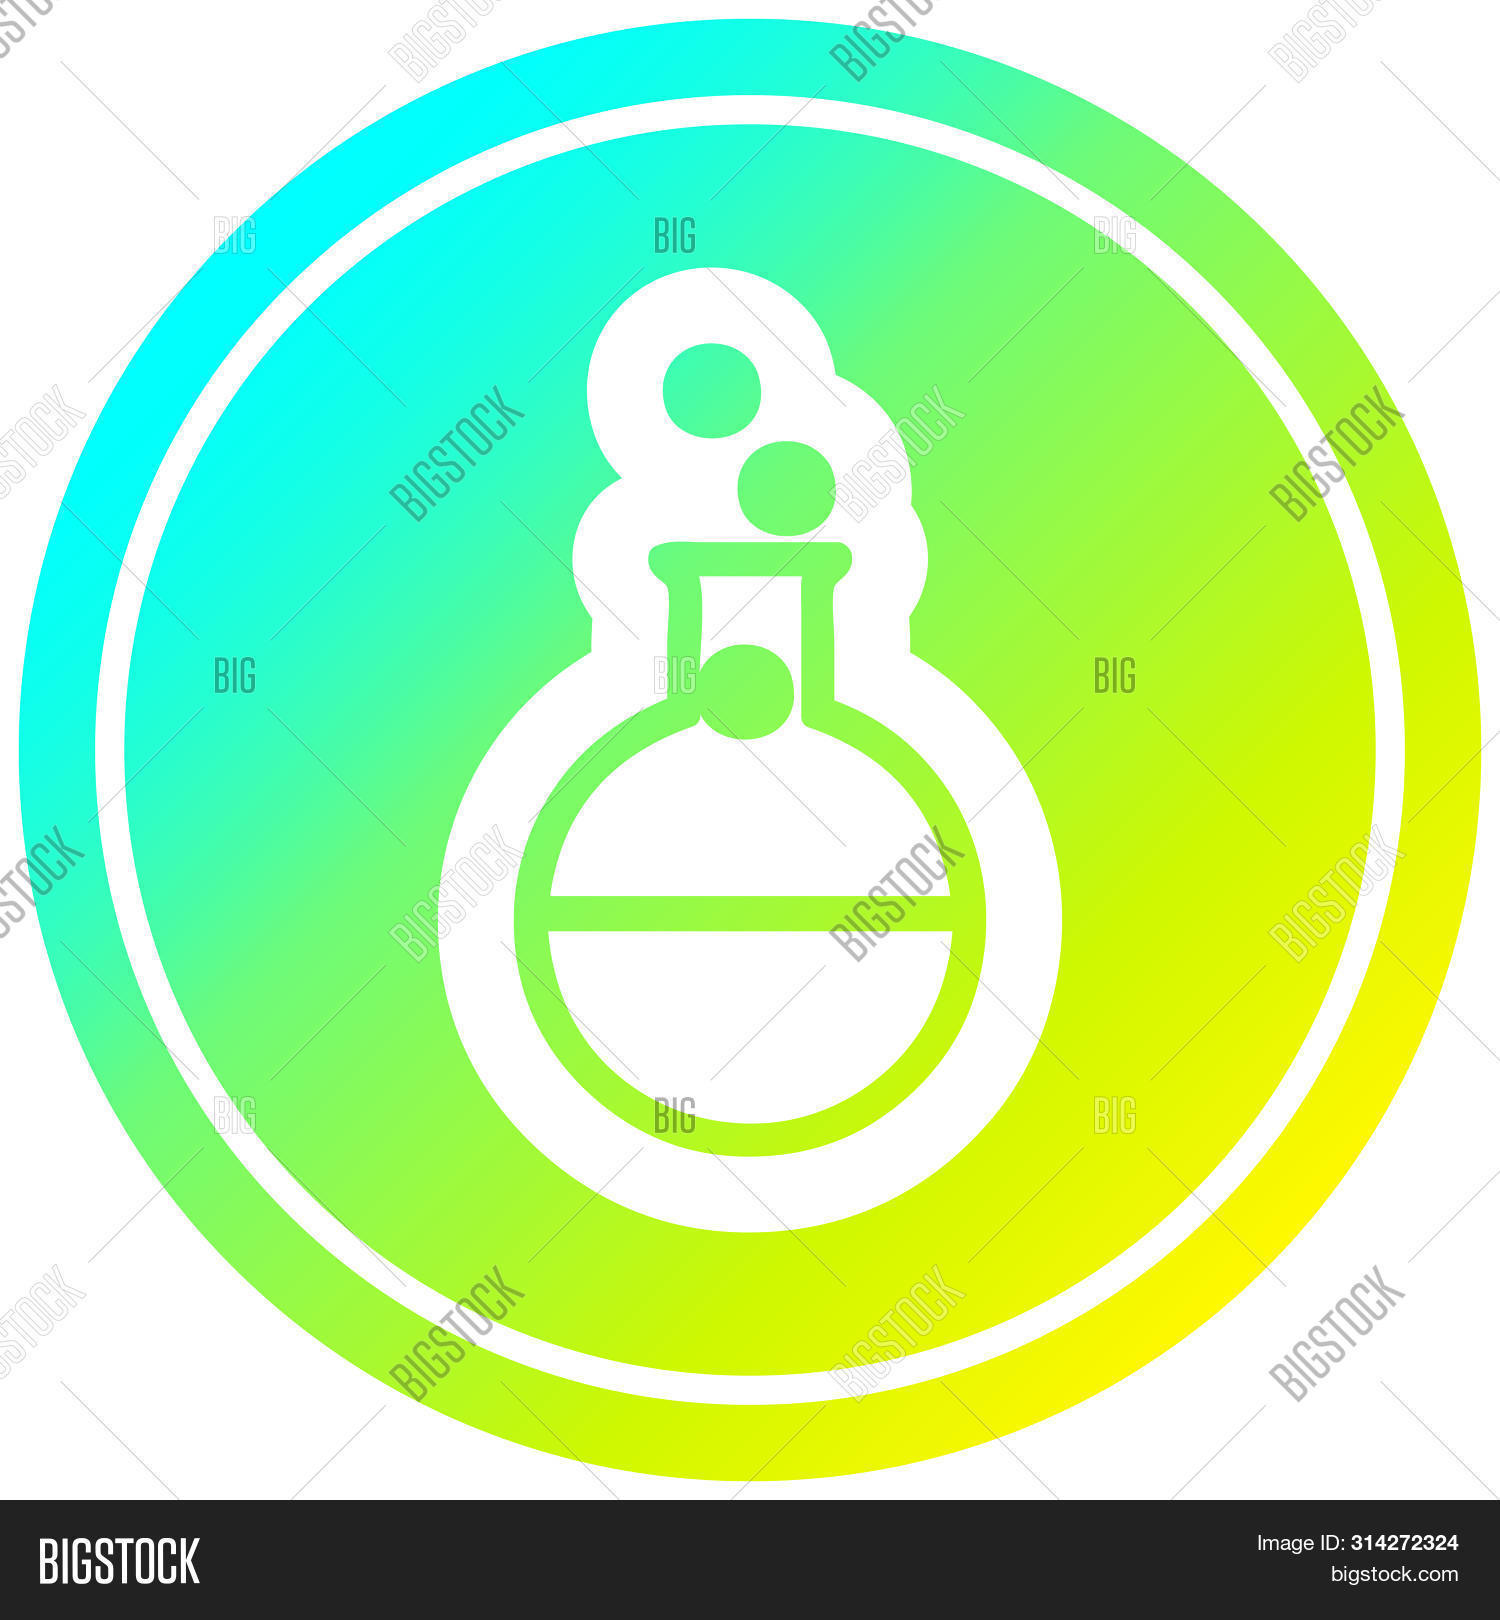 science experiment circular icon with cool gradient finish